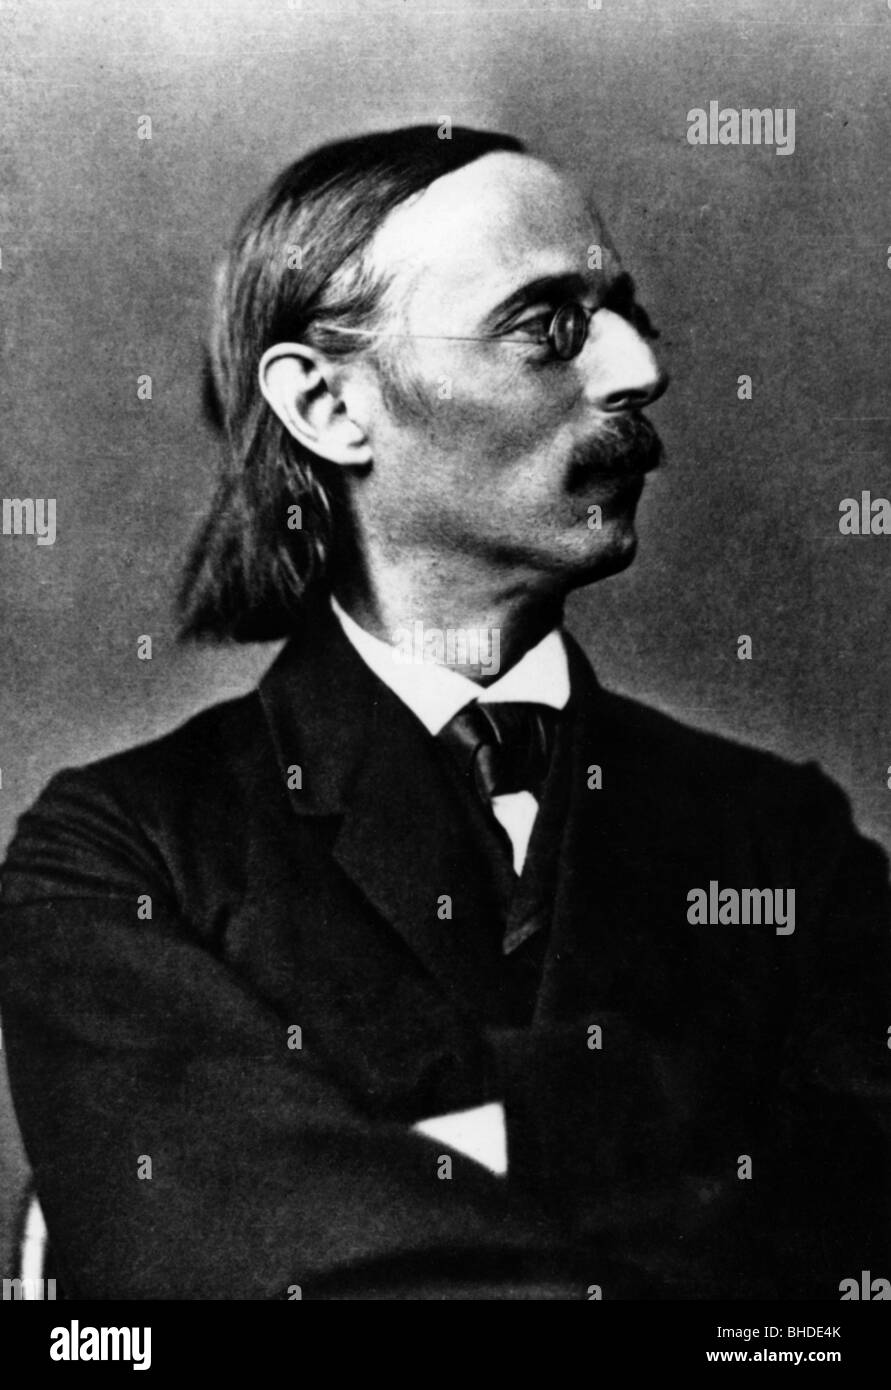 Cornelius Peter, 24.12.1824 - 26.10.1874, German composer, portrait, glasses, moustache,Stock Photo